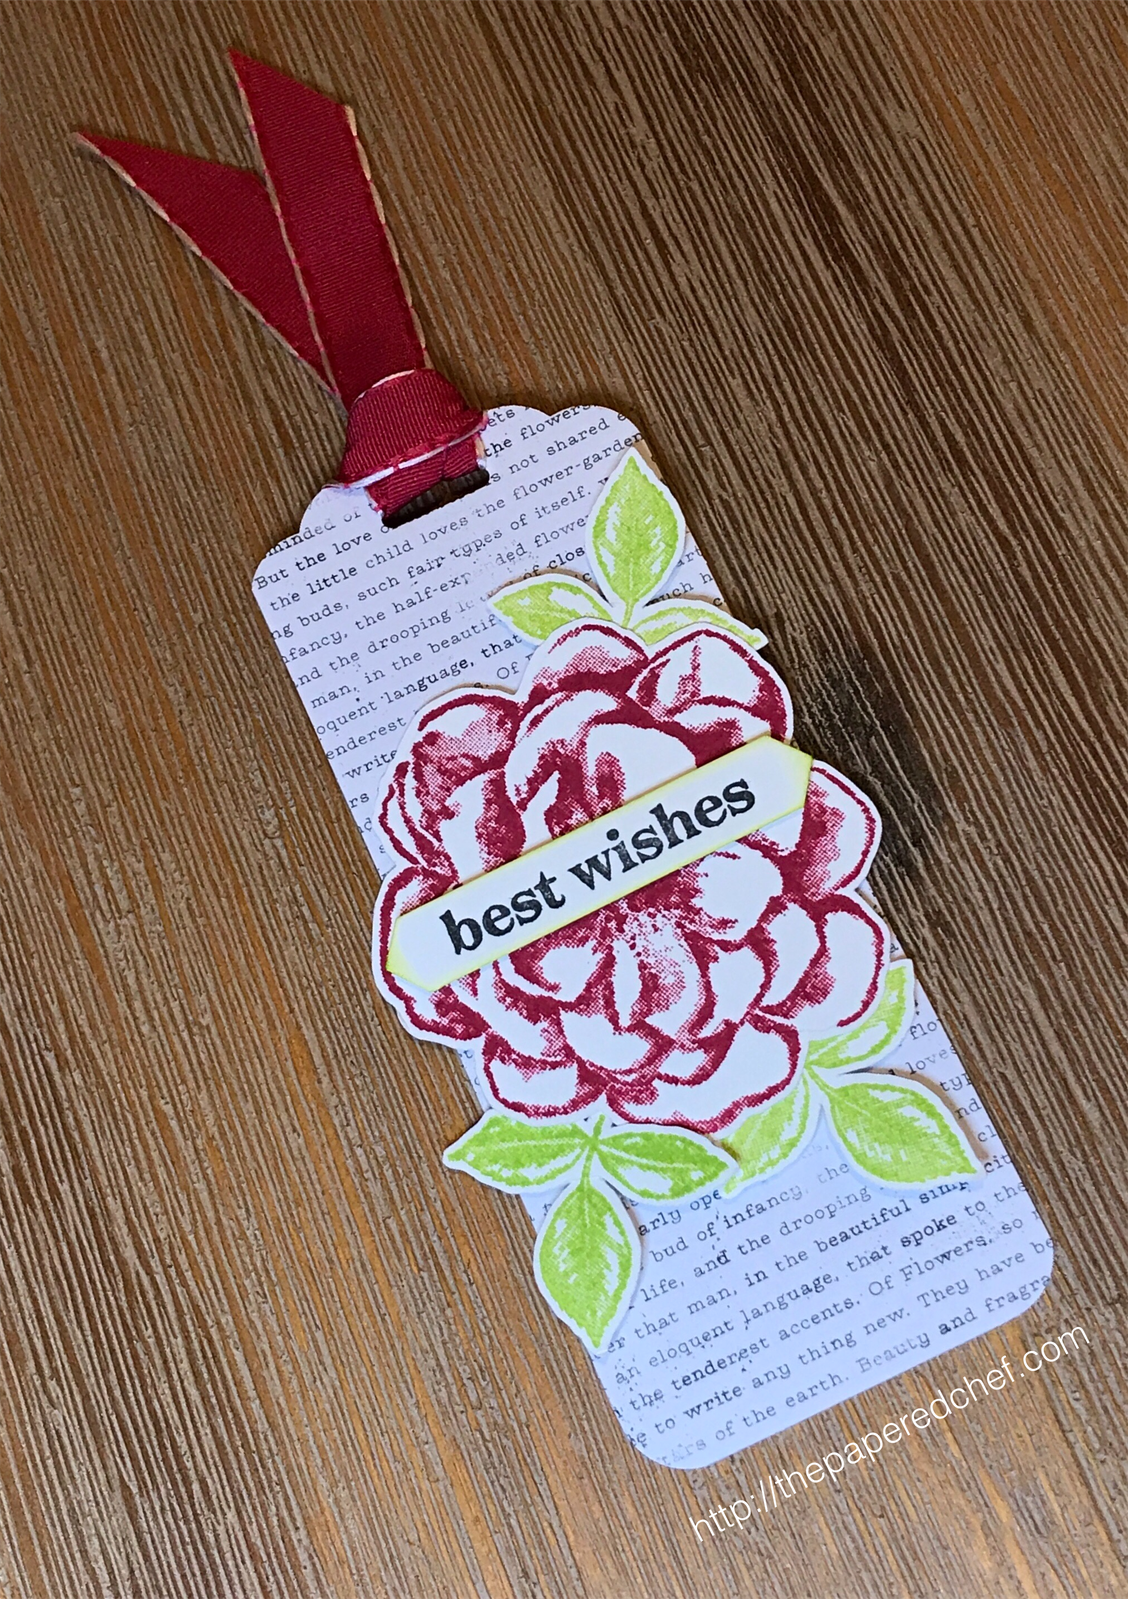 Sentimental Rose Best Wishes Bookmark